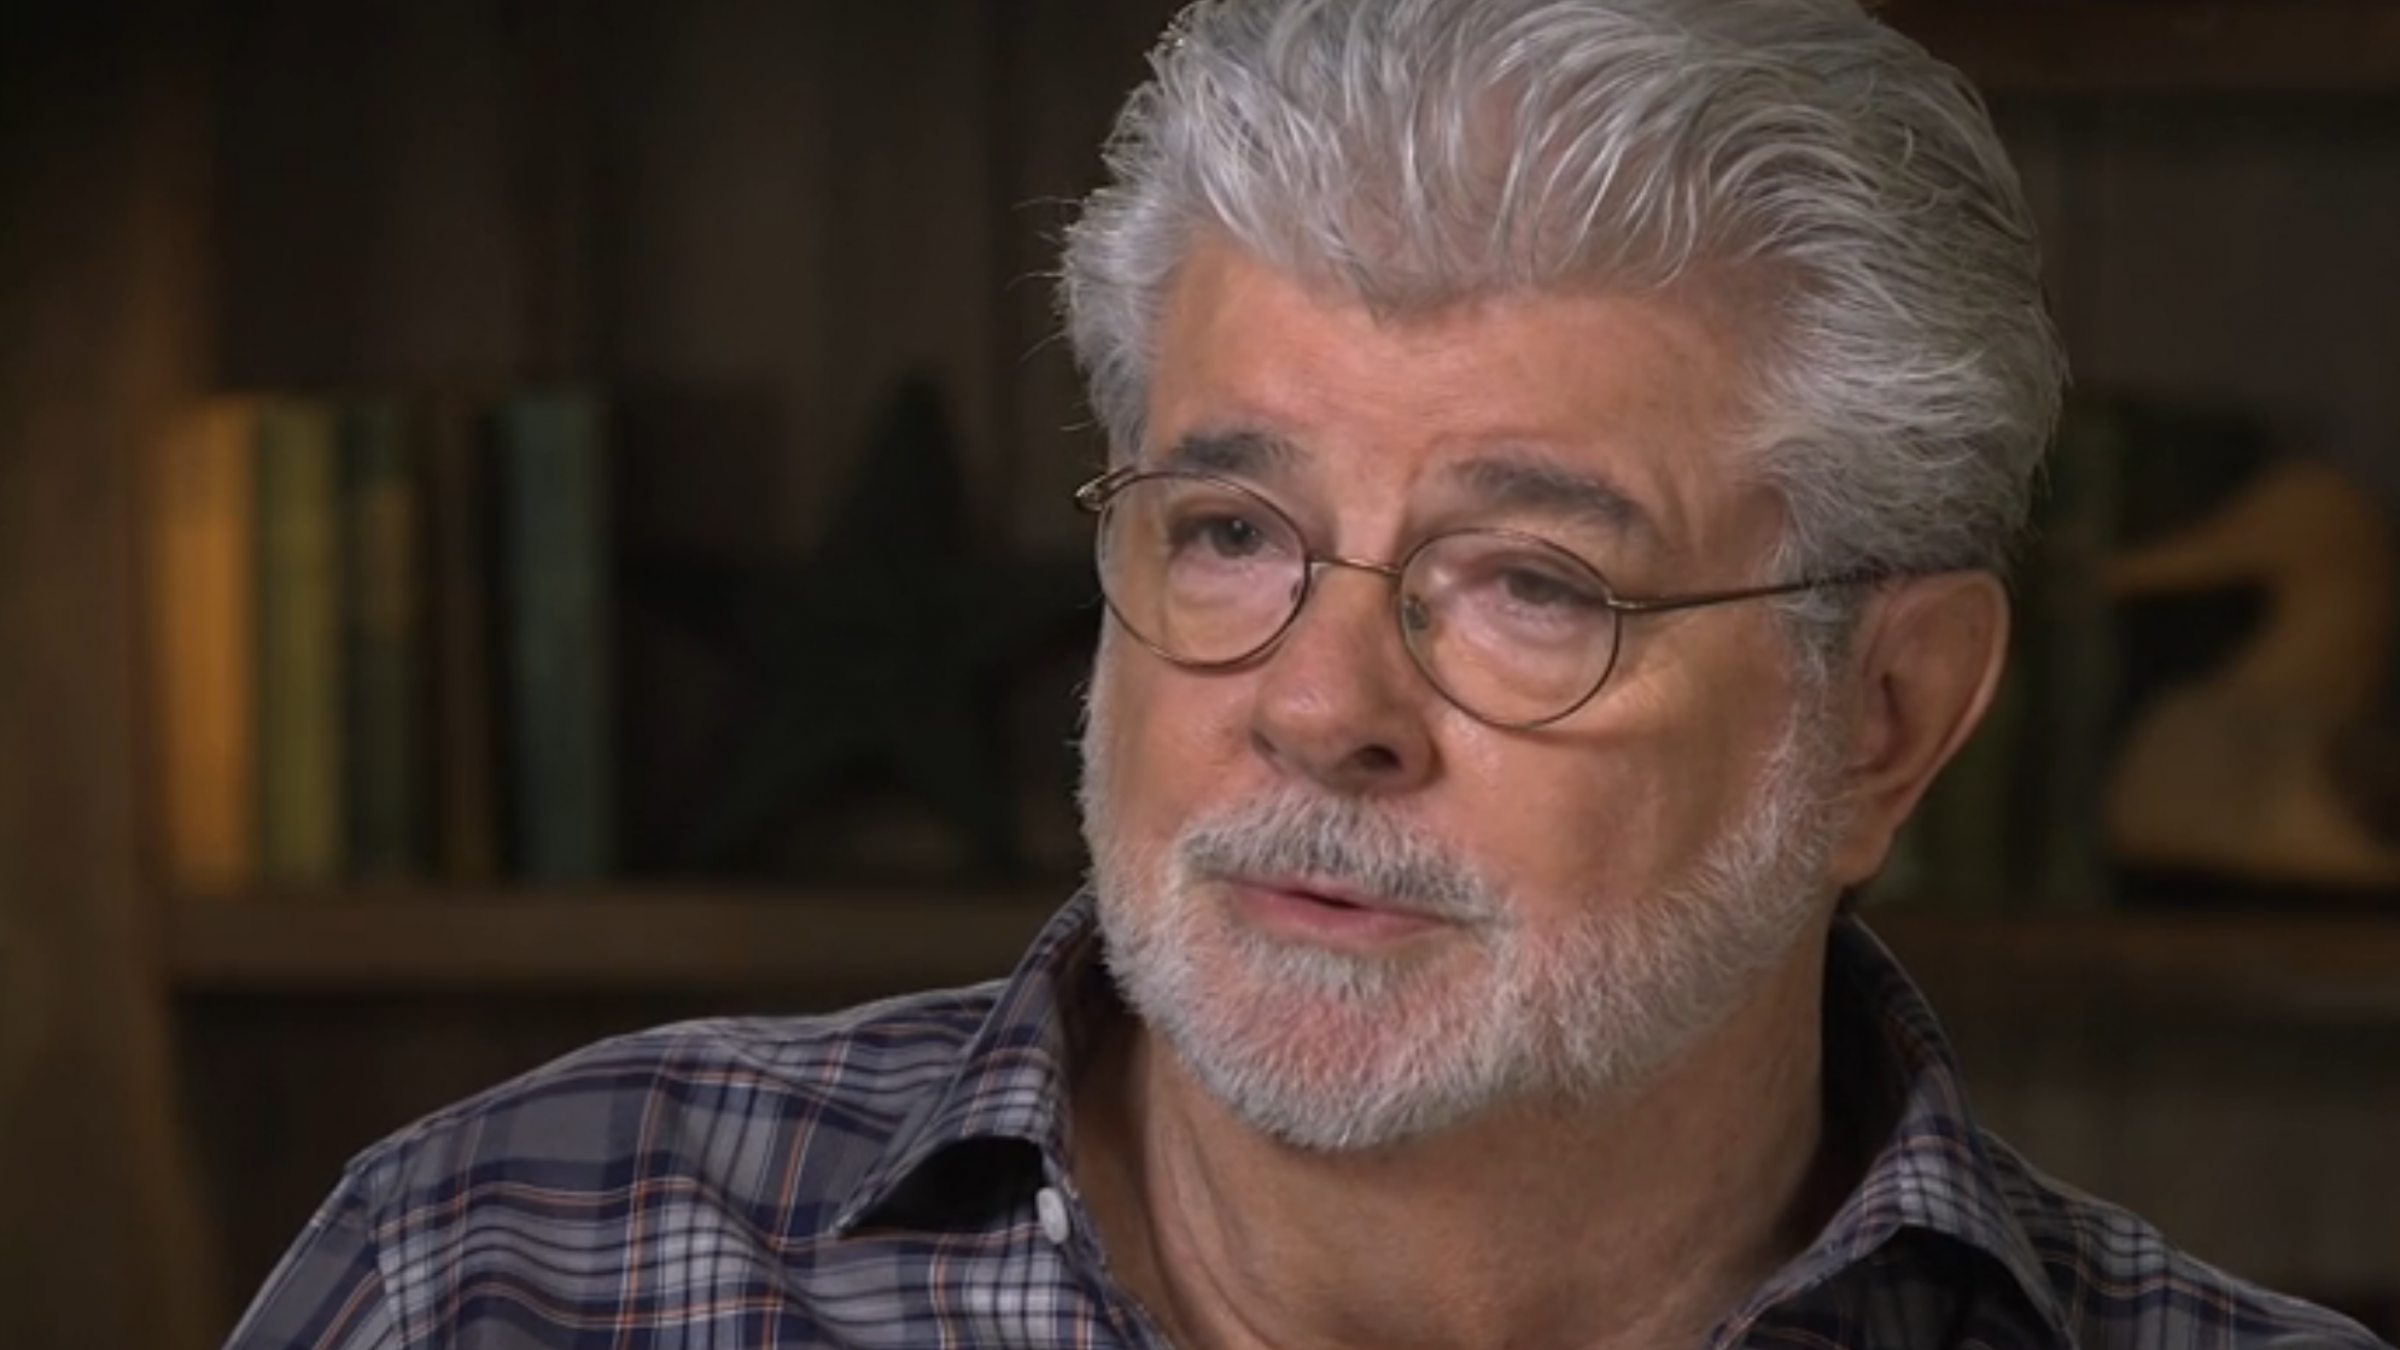 george lucas on filmmaking   u0026 39 you u2019re telling a story using tools  not using tools to tell a story u0026 39